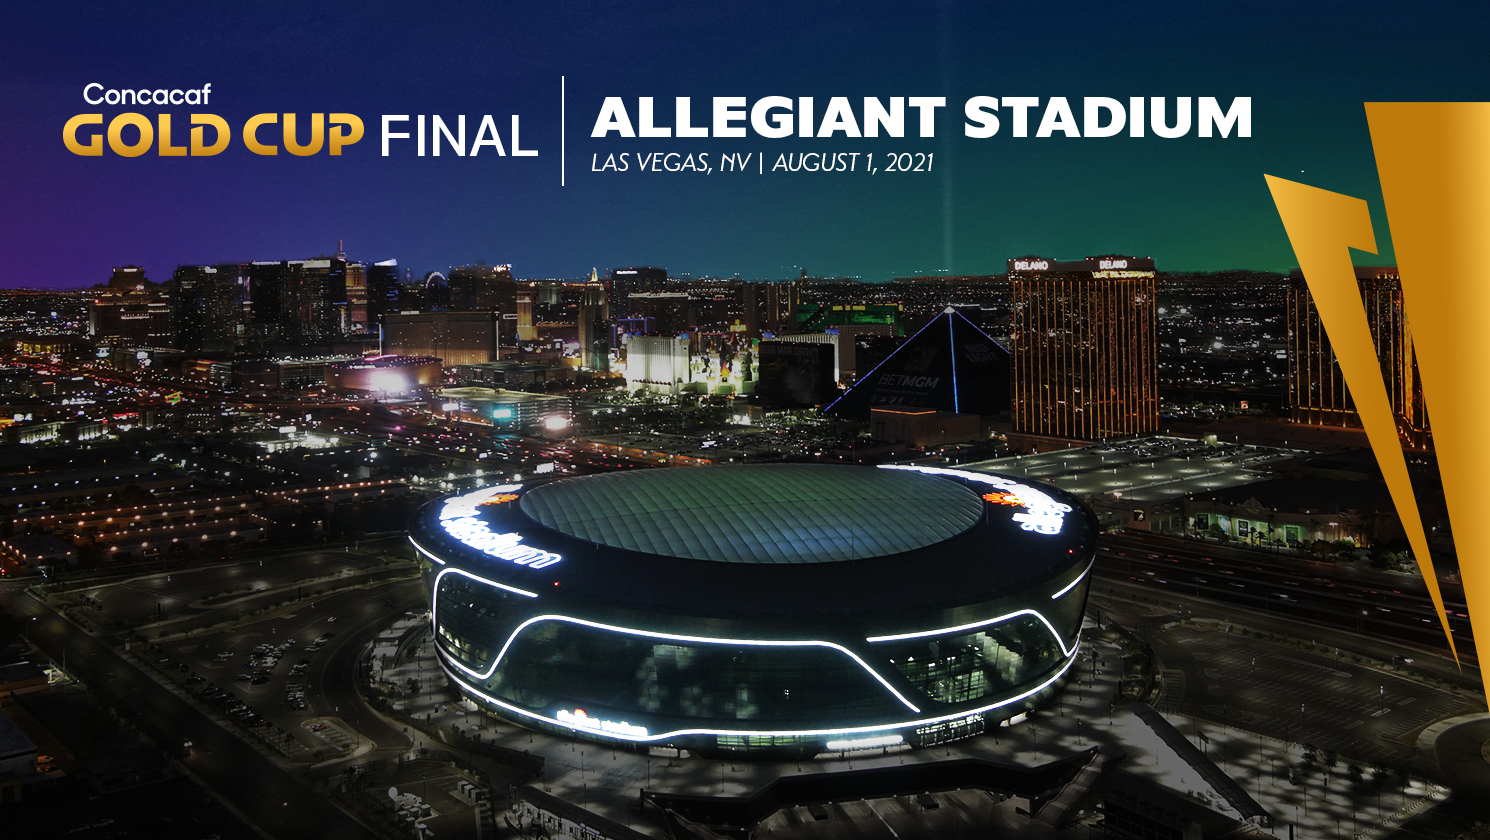 Las Vegas Awarded 2021 Concacaf Gold Cup Final